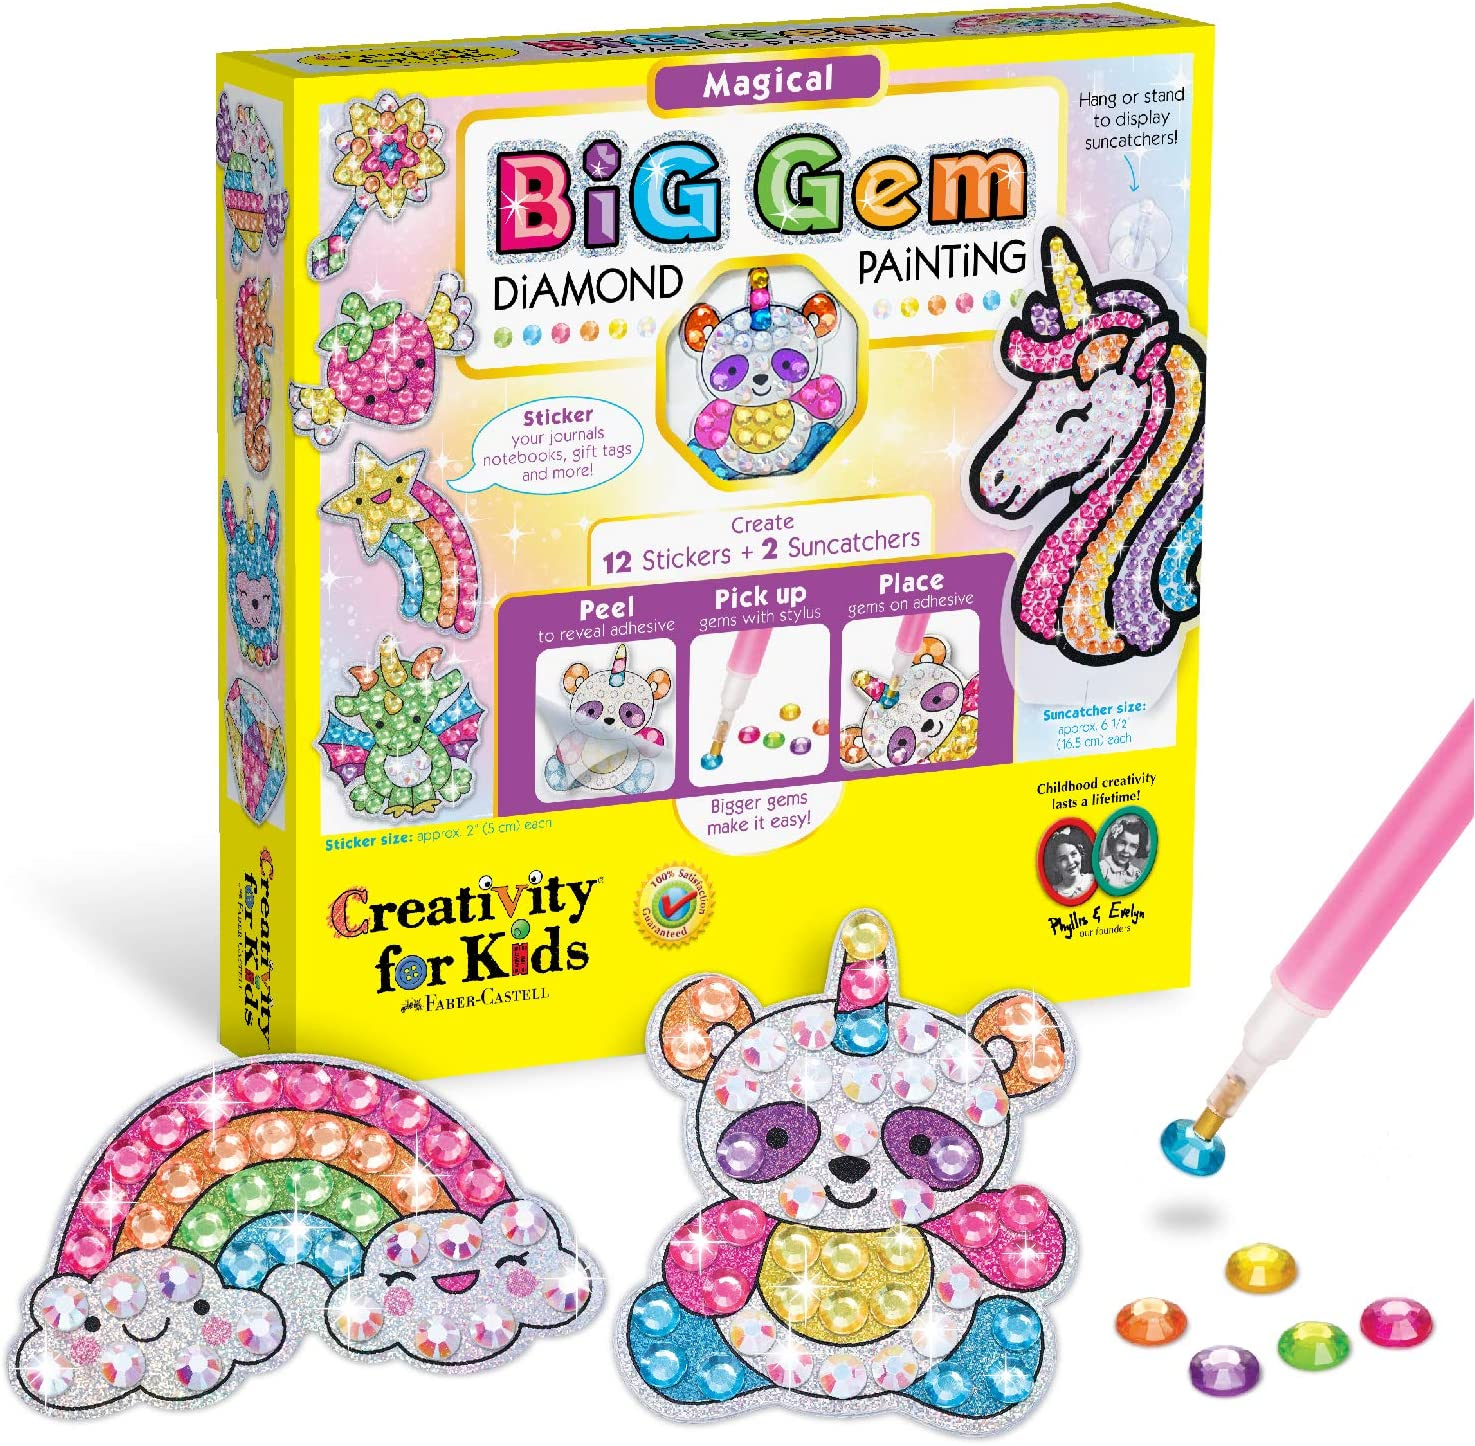 XXTOYS Big Gem Diamond Painting for Kids Arts /& Crafts for Kids 5D Mosaic Painting Stickers Kit Great Crafts for Girls Creative Gift for Ages 6-8 12pcs Diamond Art